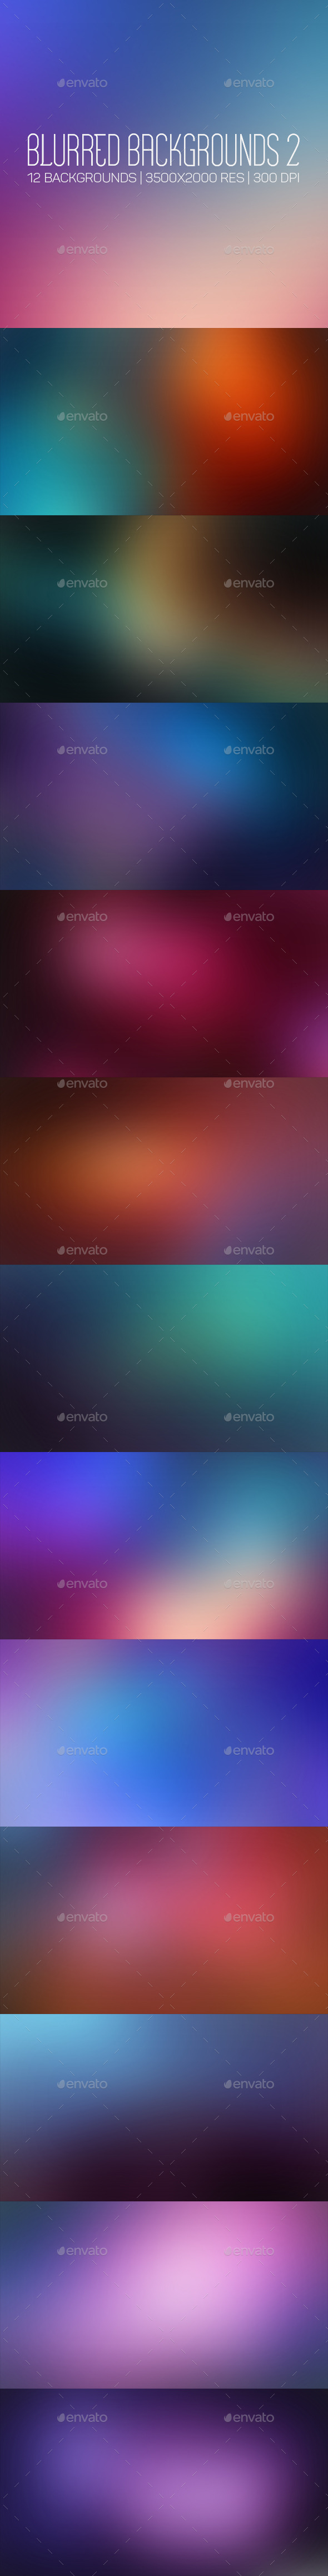 GraphicRiver Blurred Backgrounds 2 10565779